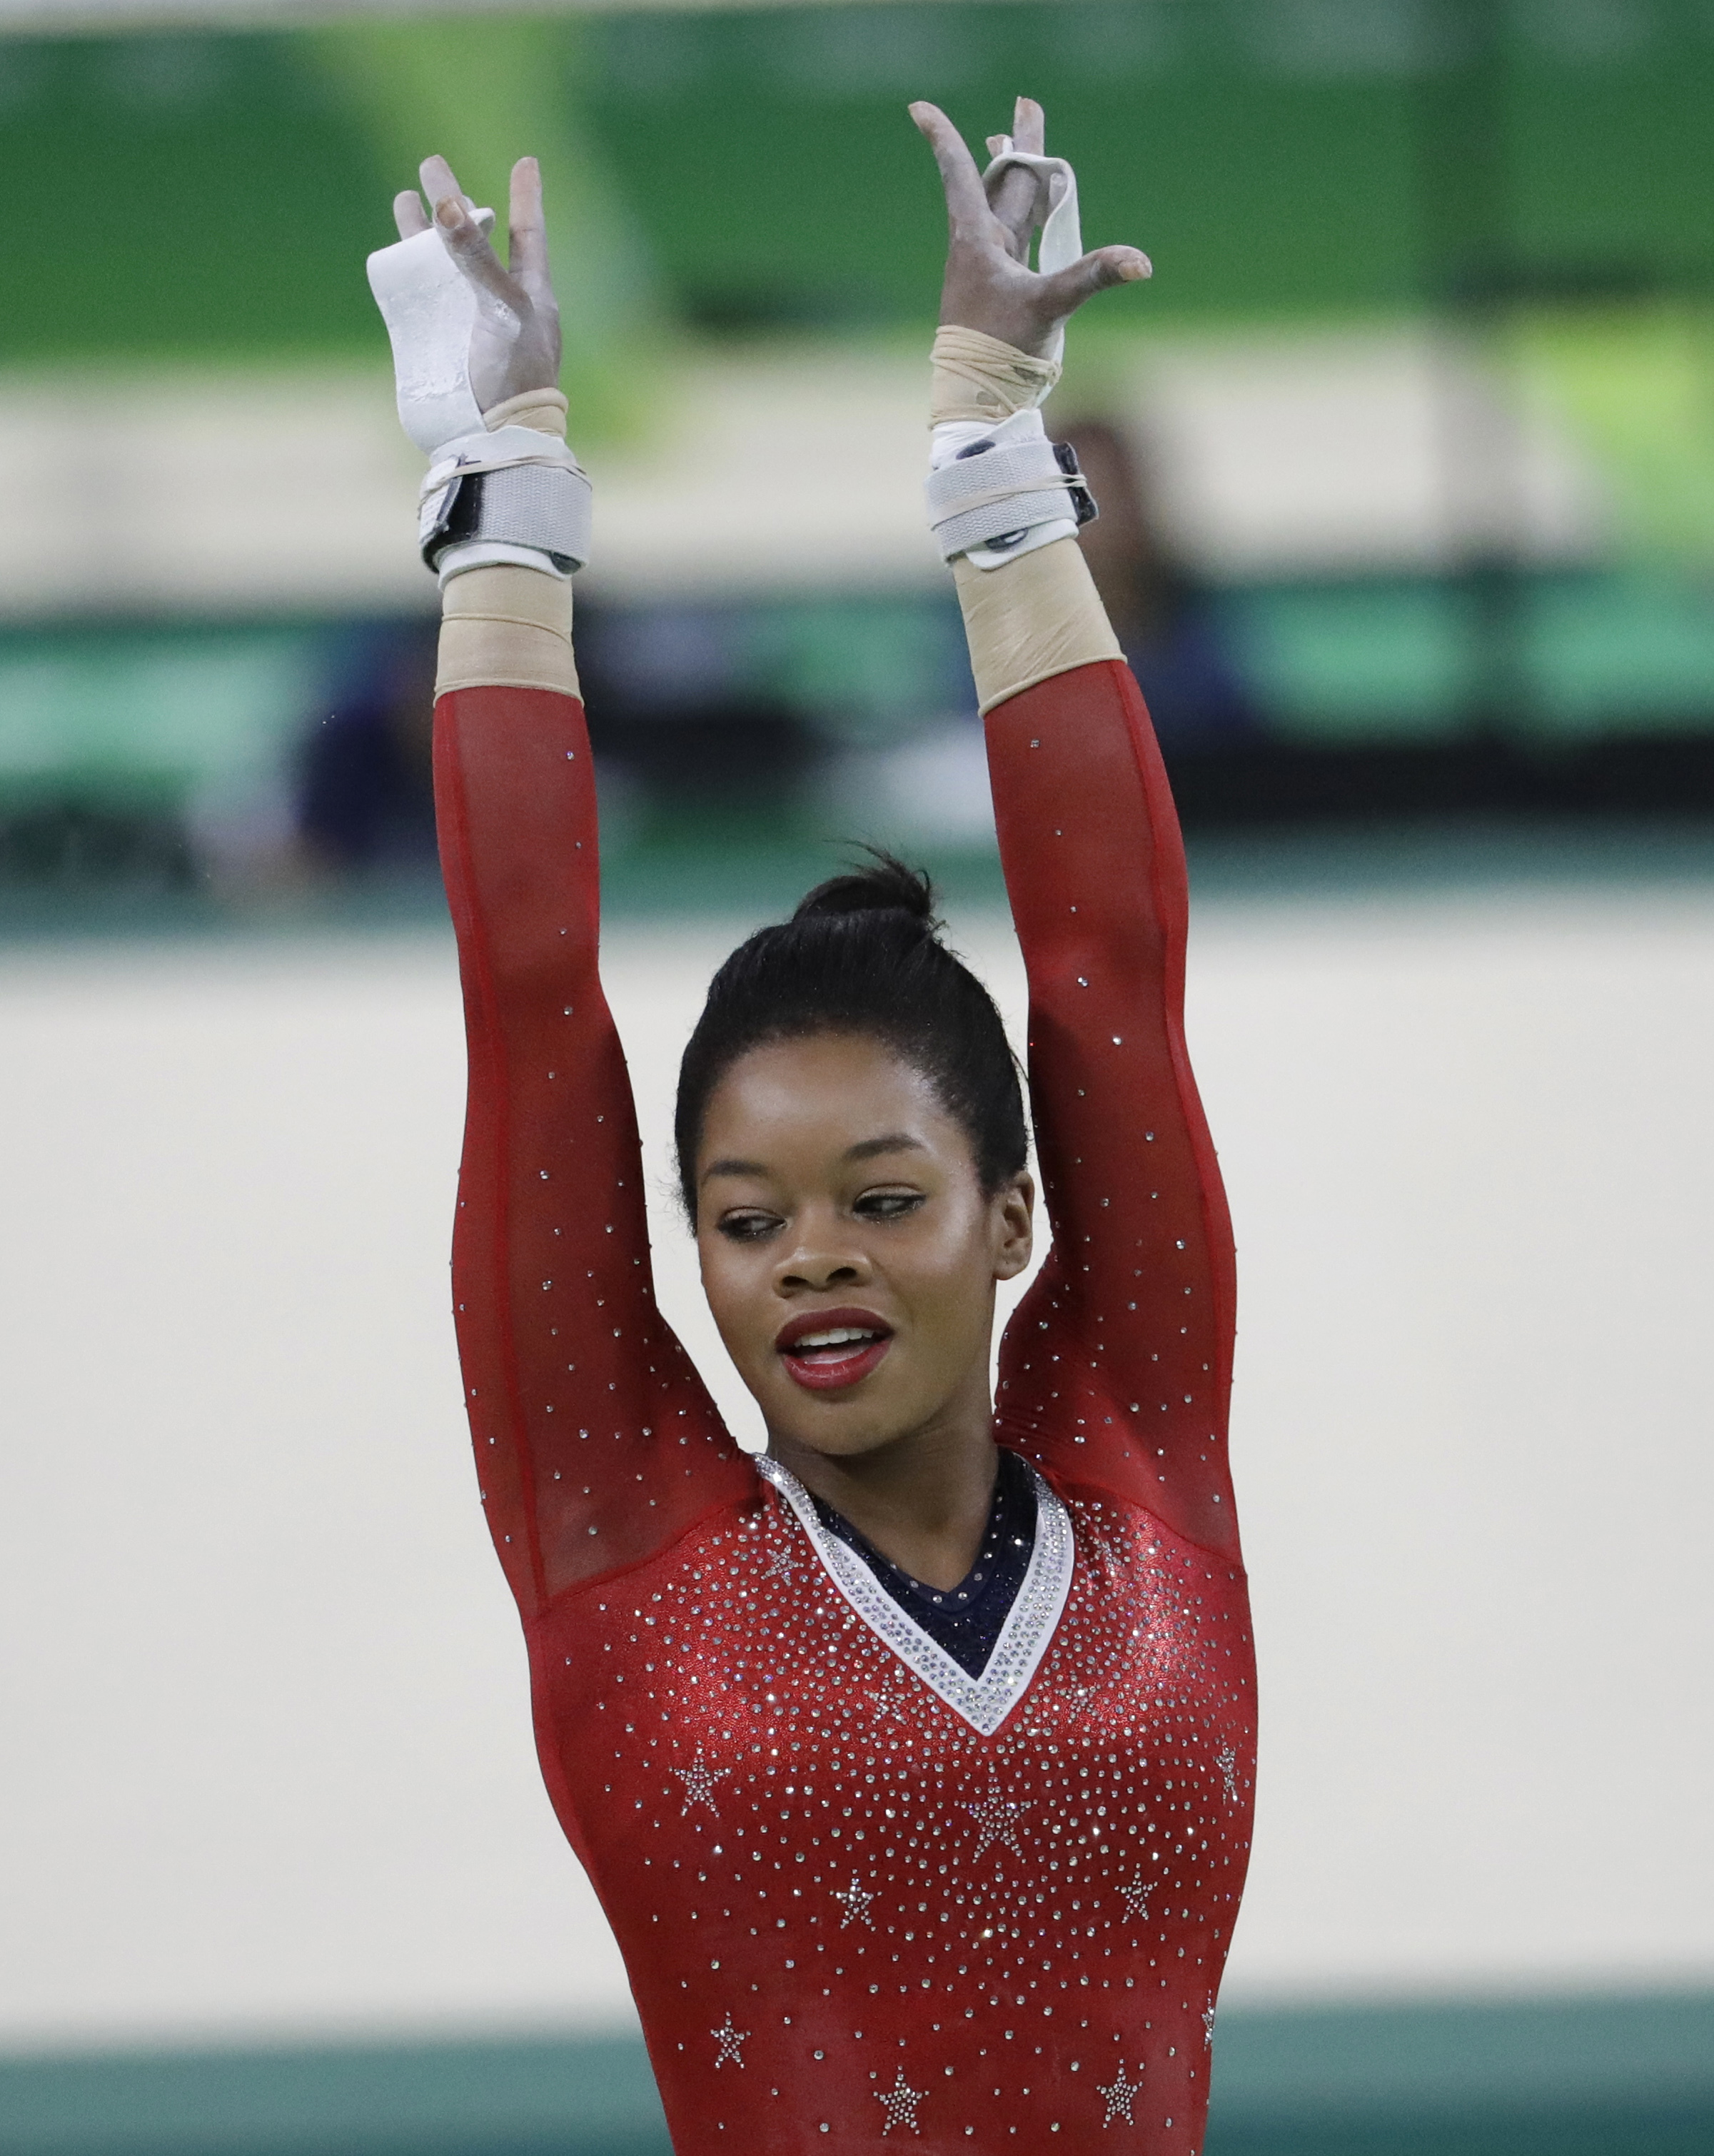 United States' Gabrielle Douglas completes her routine on the uneven bats during the artistic gymnastics women's apparatus final at the 2016 Summer Olympics in Rio de Janeiro, Brazil, Sunday, Aug. 14, 2016. (AP Photo/Julio Cortez)